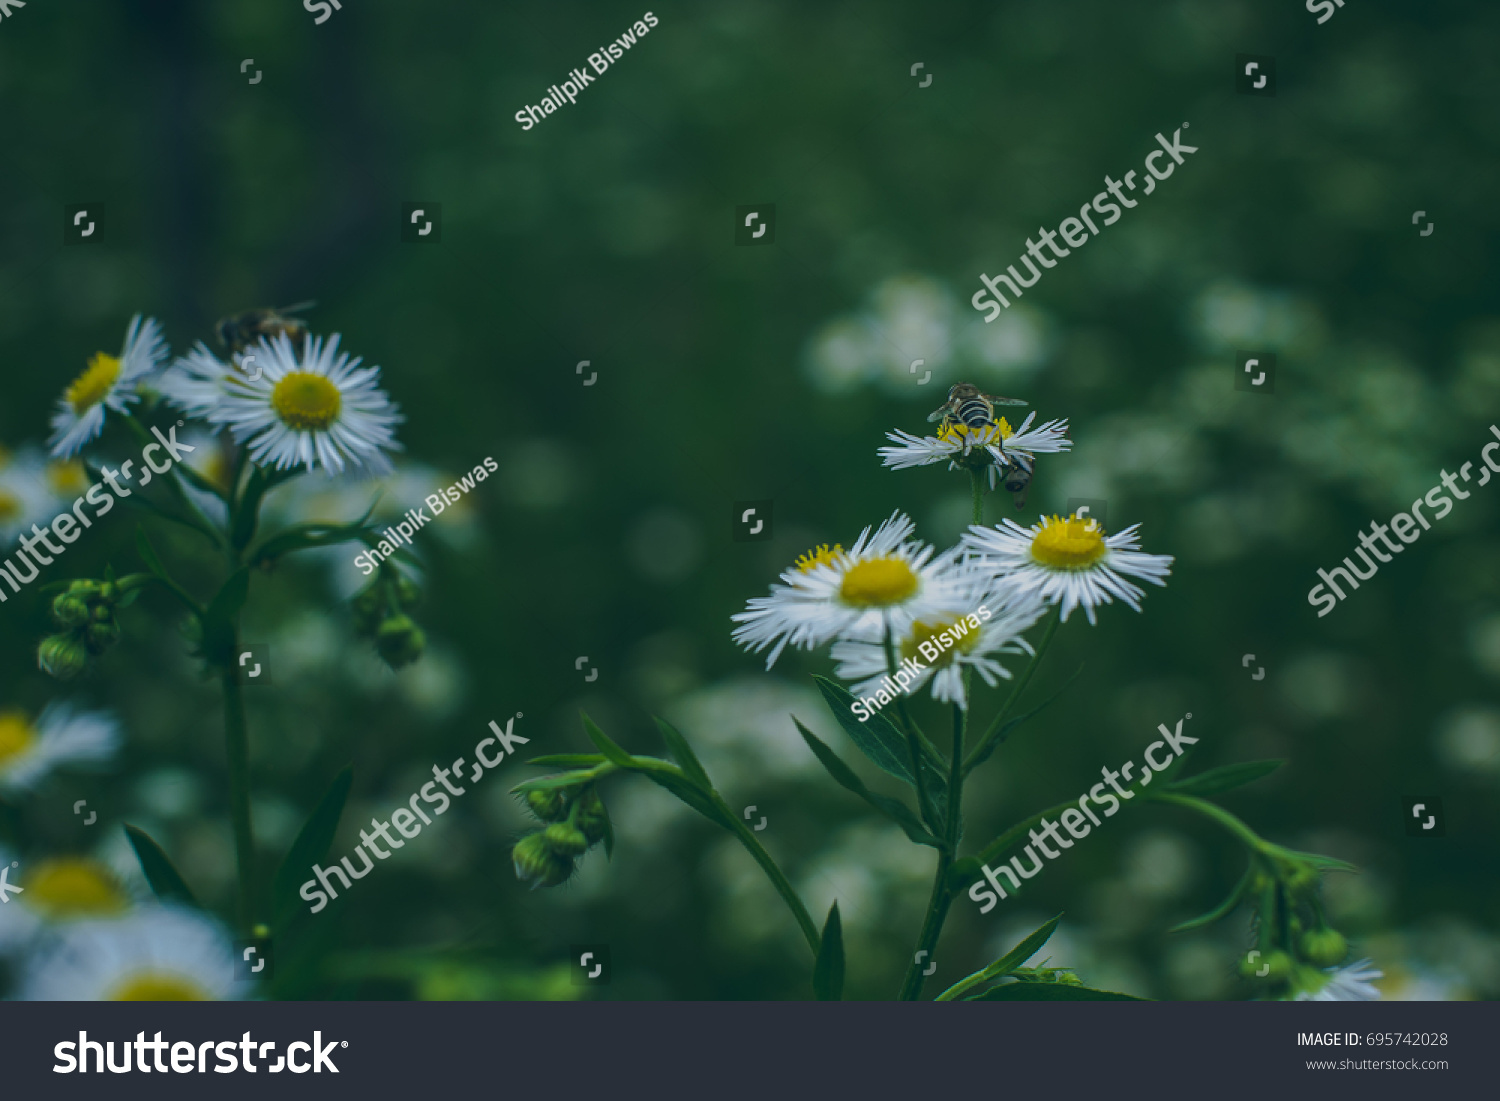 Shot beautiful wild flowers growing forest stock photo edit now shot of beautiful wild flowers growing in the forest areas of himachal pradesh india izmirmasajfo